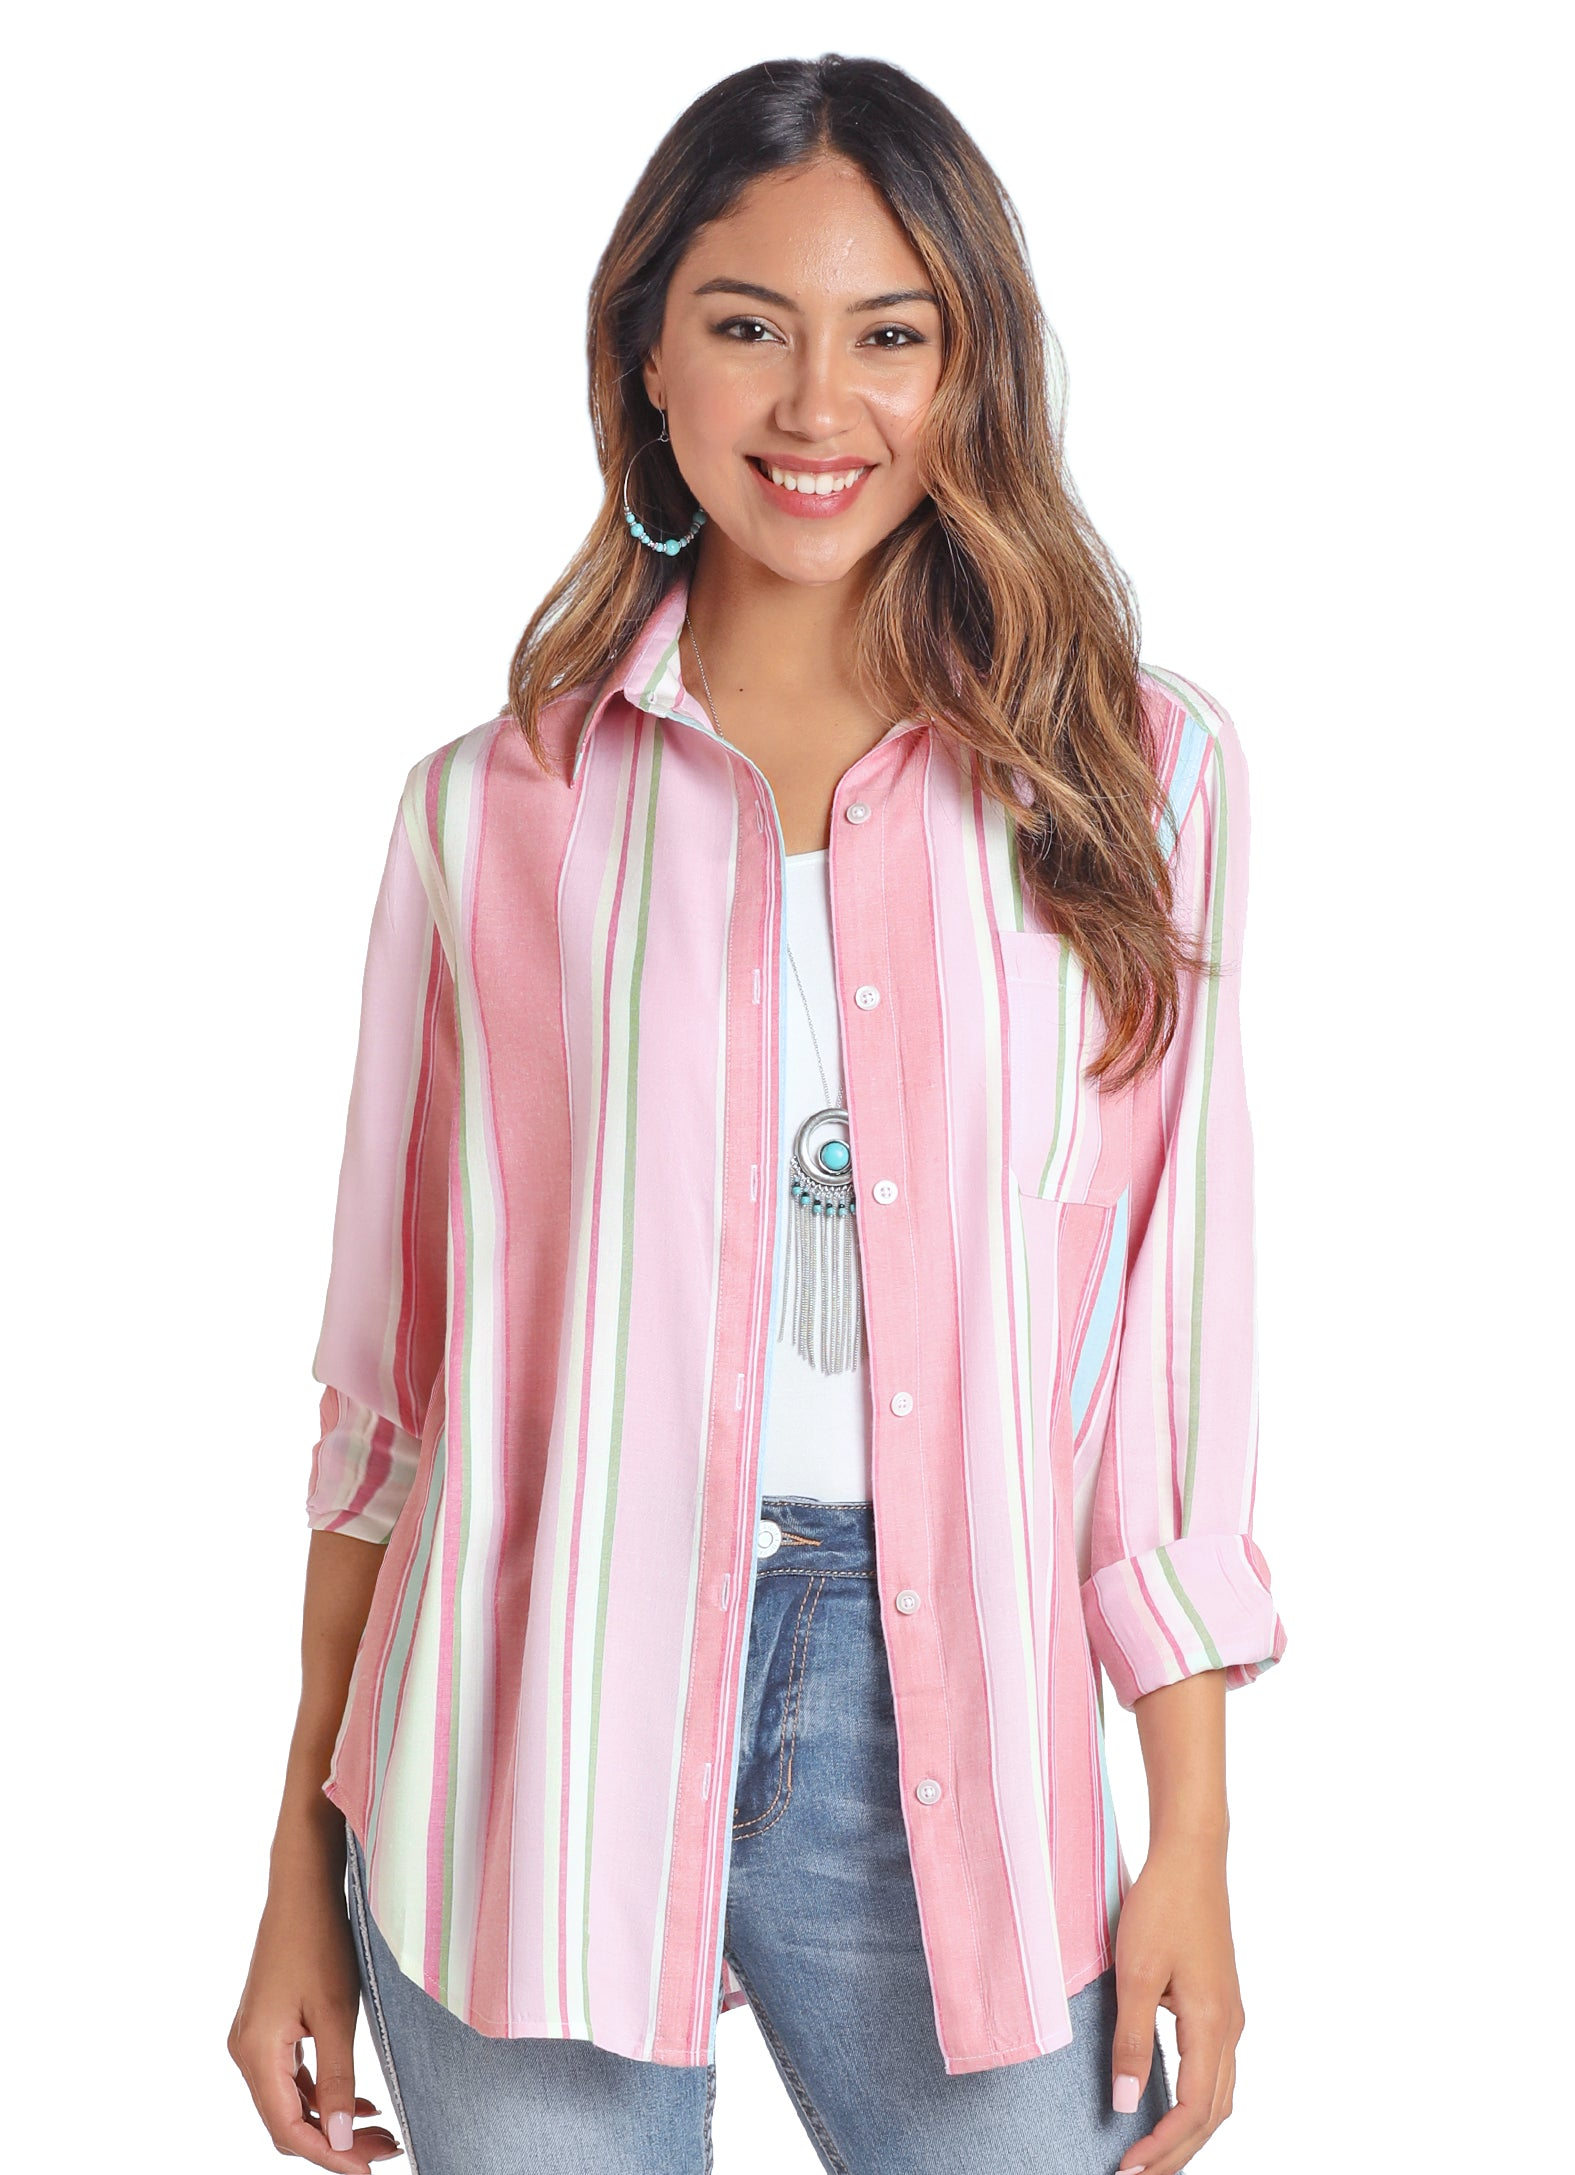 Panhandle Women's Button Down Boyfriend Serape Print Shirt